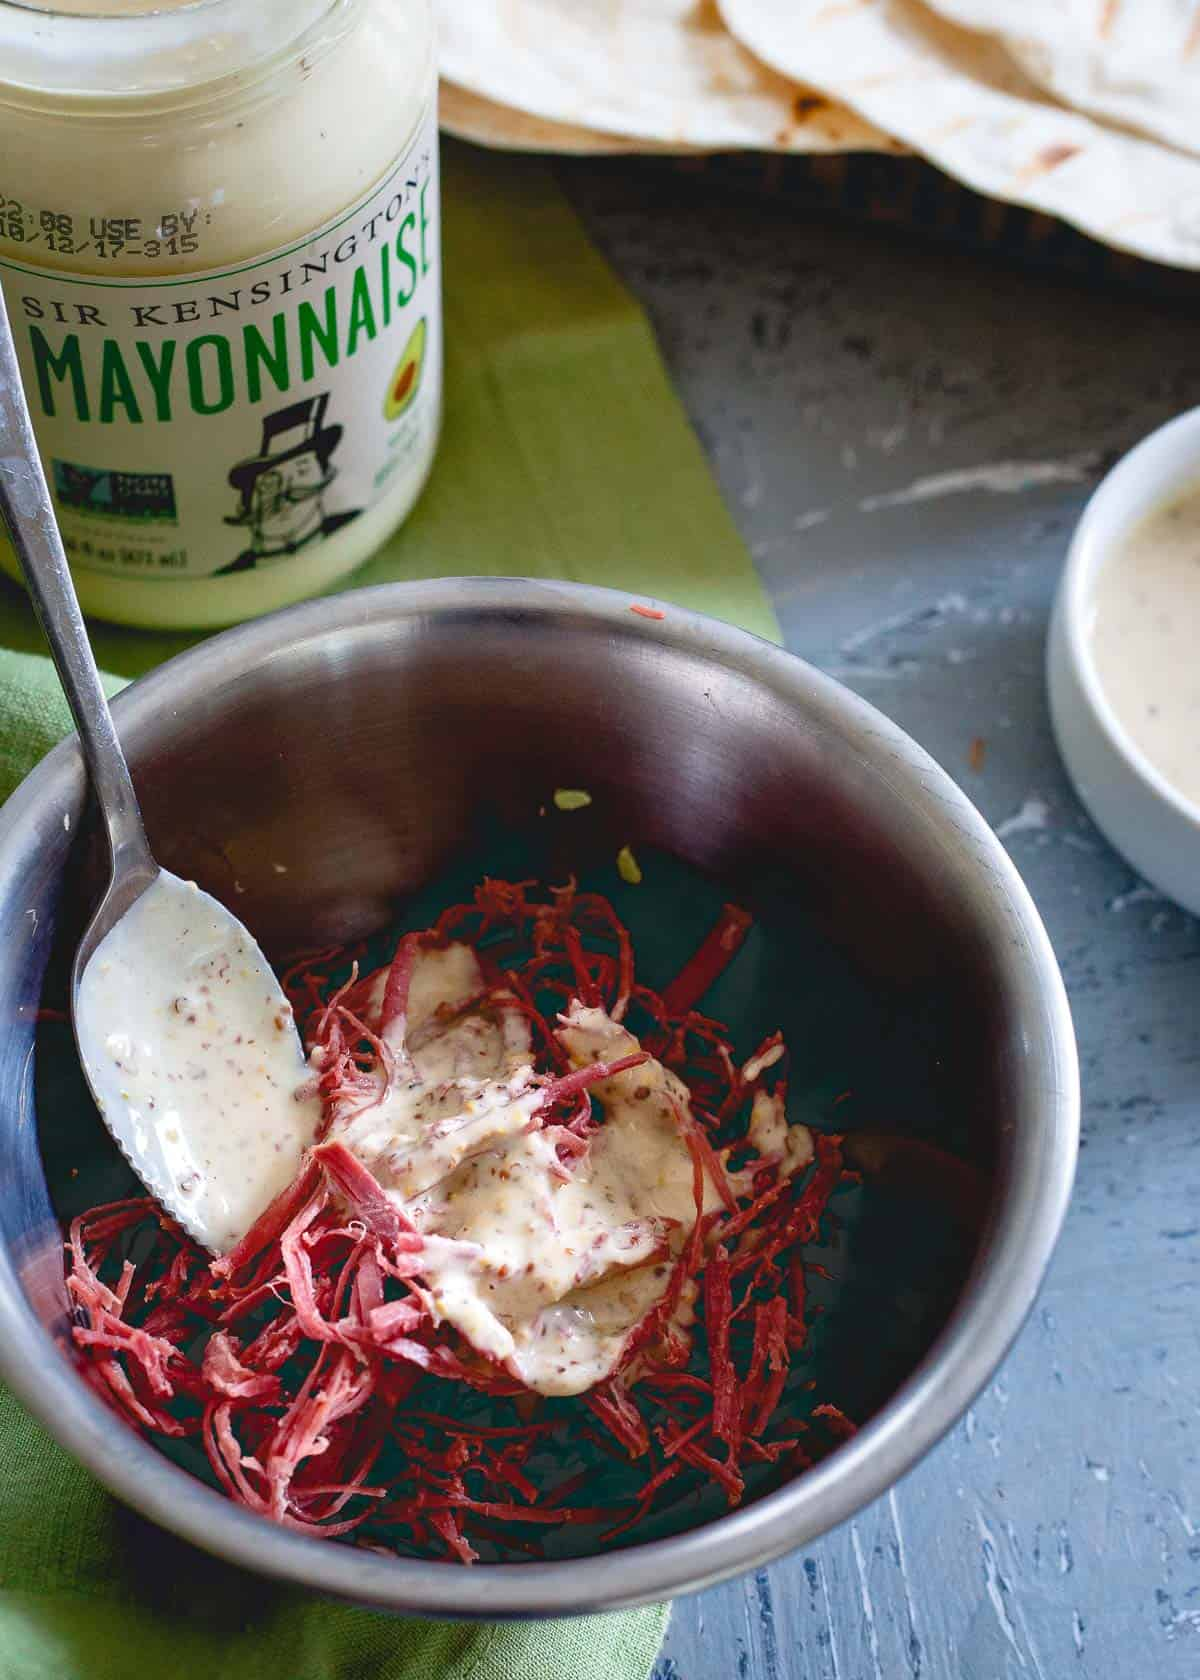 Avocado mayonnaise is used to make a creamy spicy mustard sauce in these corned beef tacos.